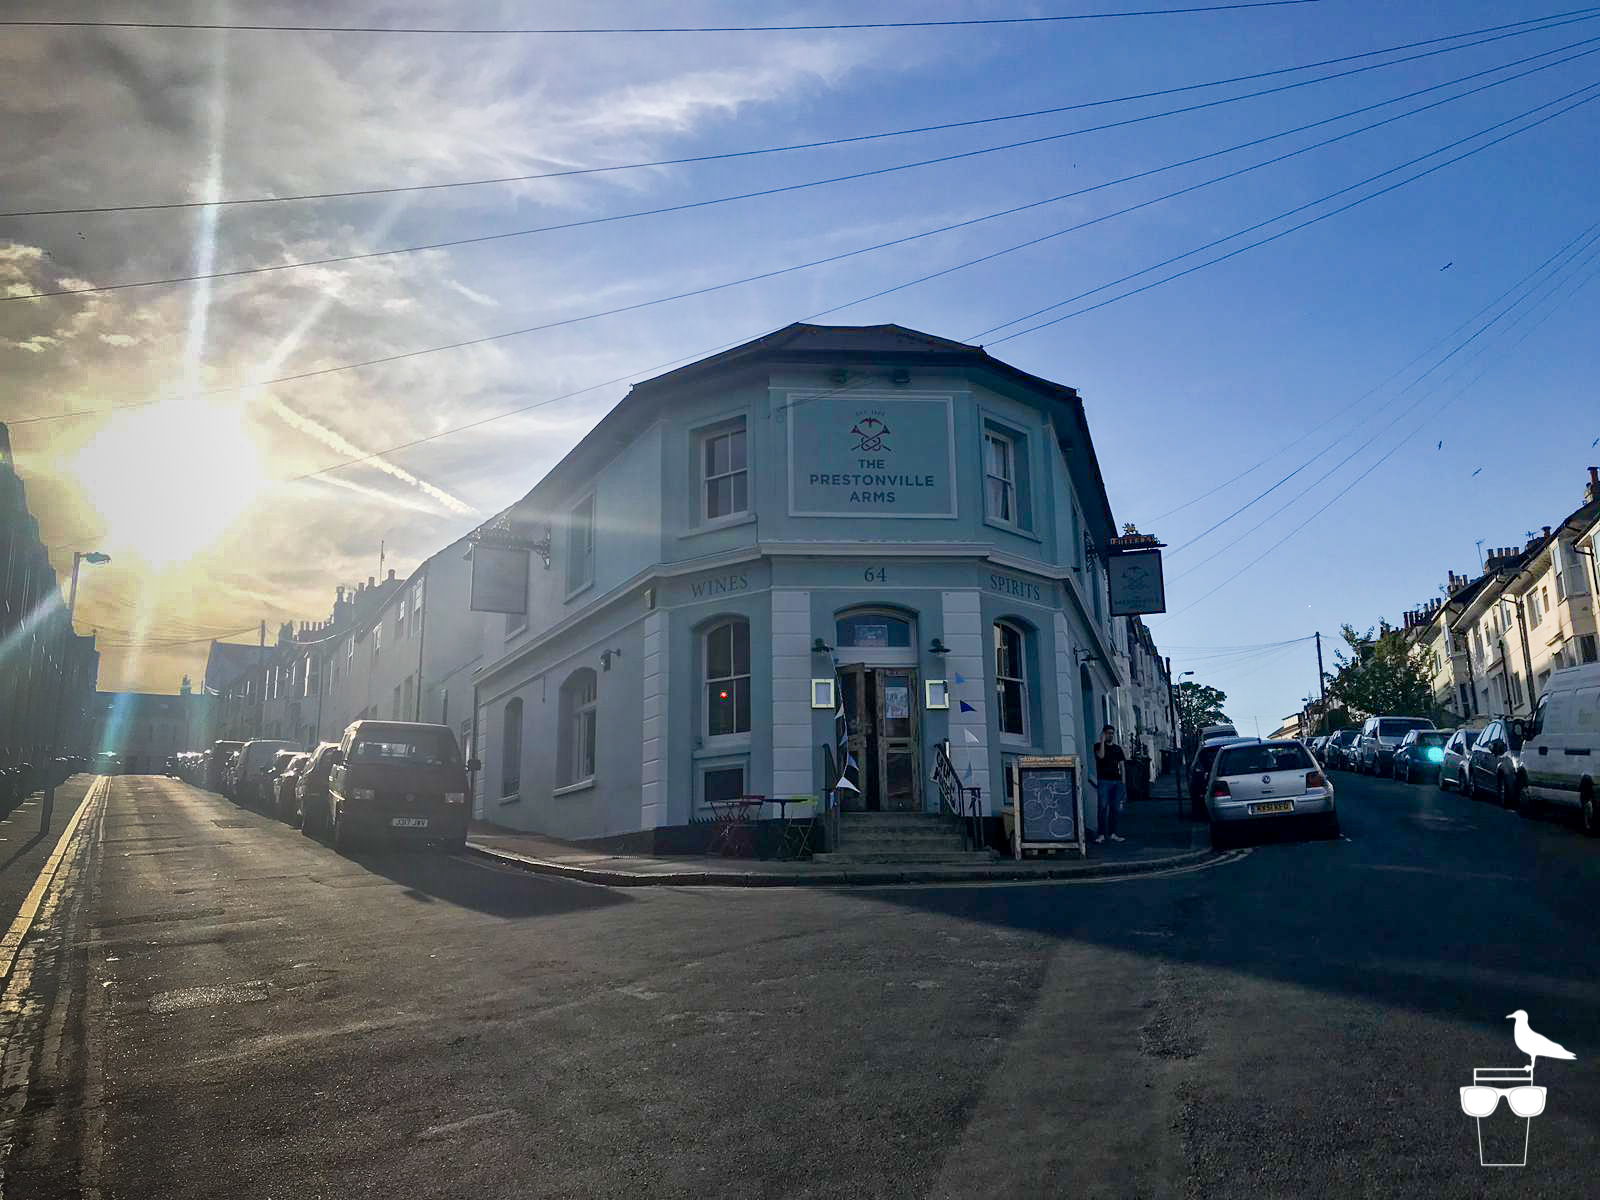 the prestonville arms pub brighton outside front elevation with sunset